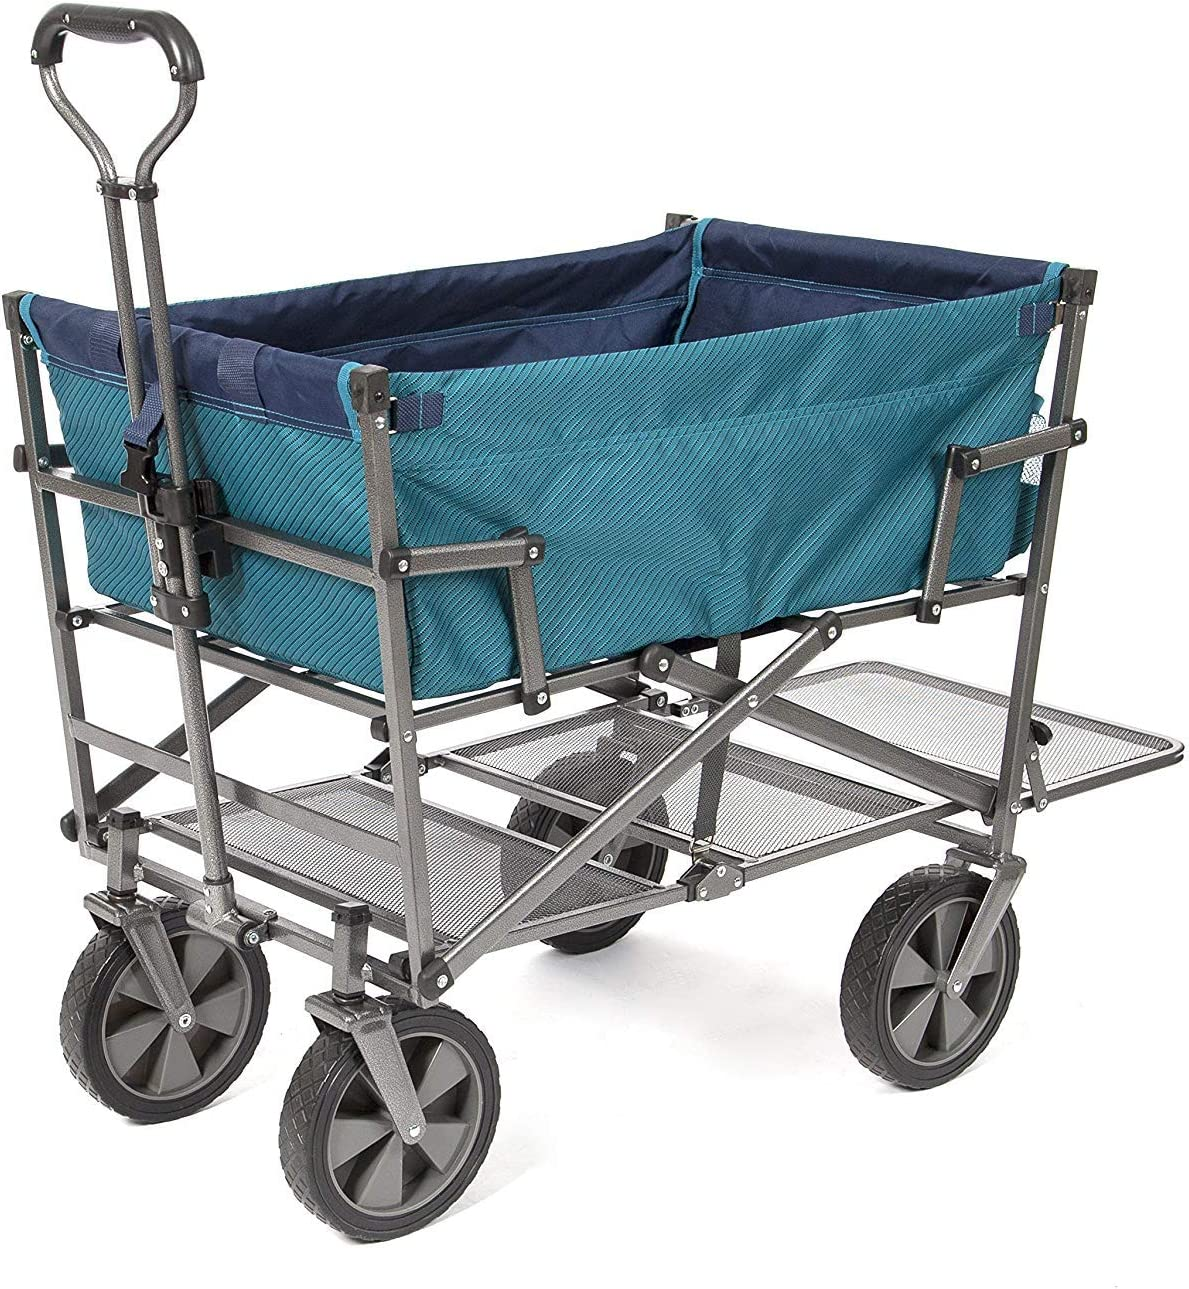 Mac Sports Double Decker DD-100 Teal, Wagon